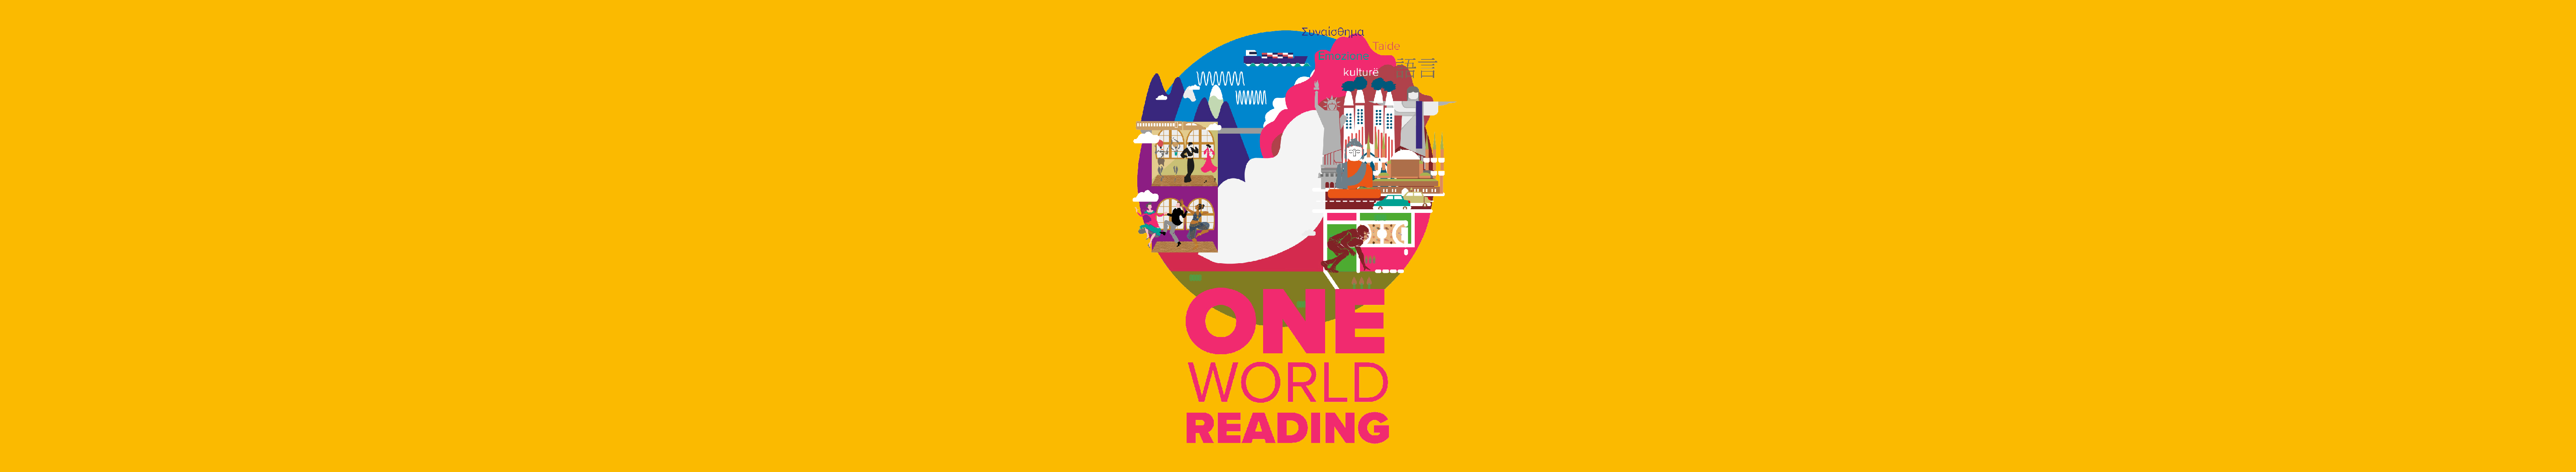 RUSU One World Reading campaign 2017-18